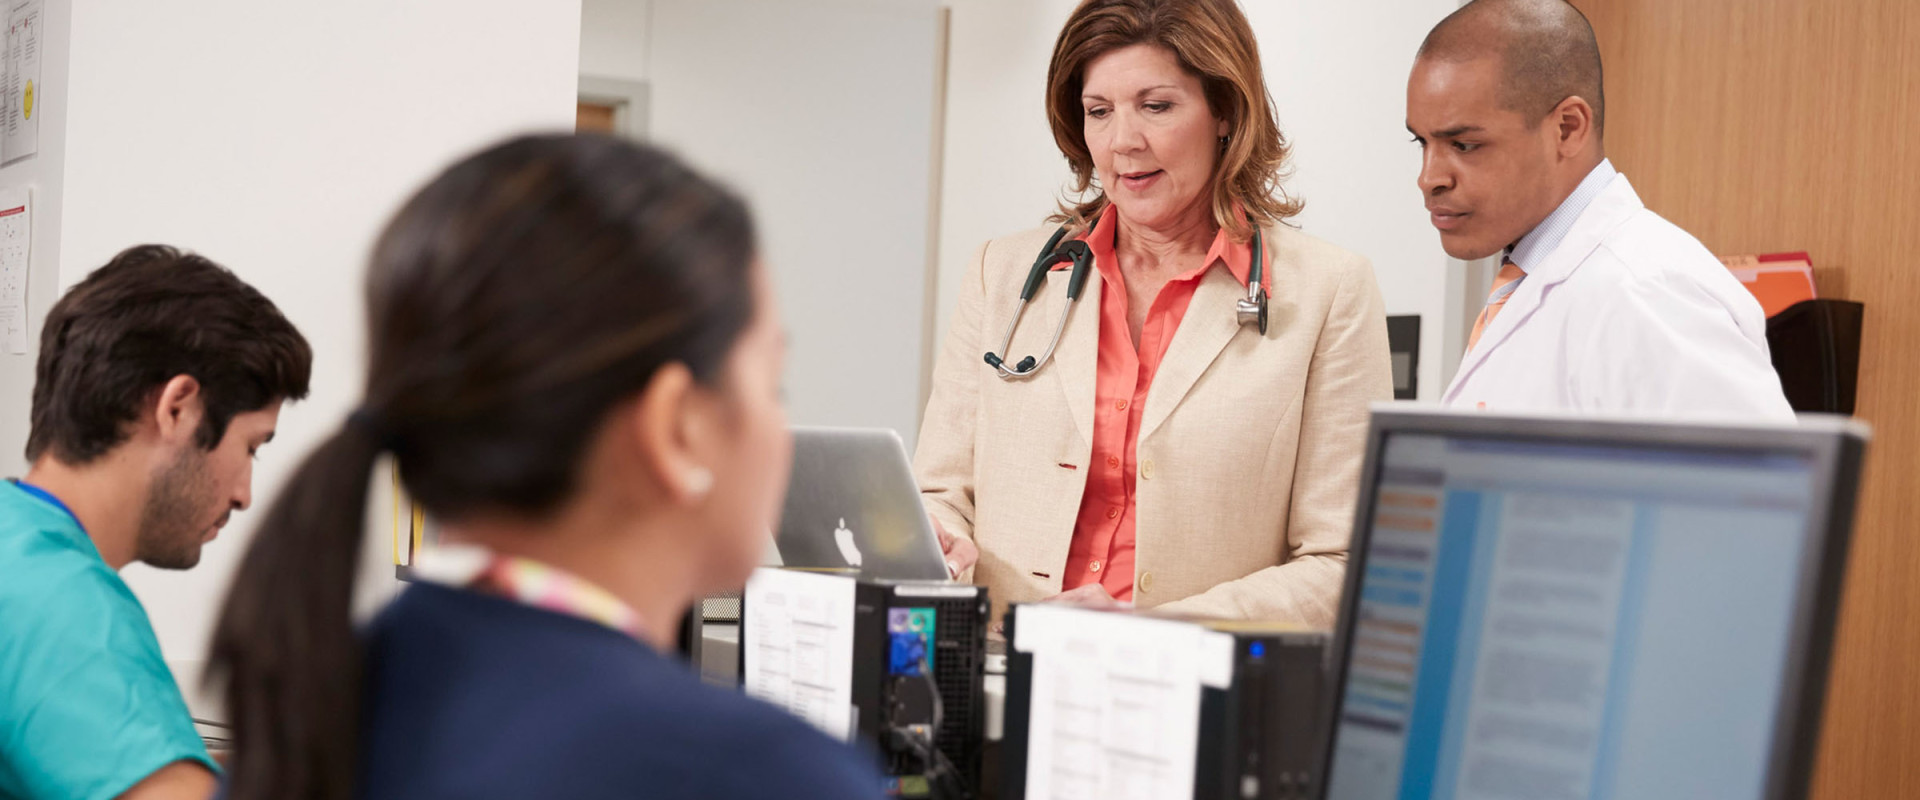 6 Things Health Systems Need in Medication Access Technology